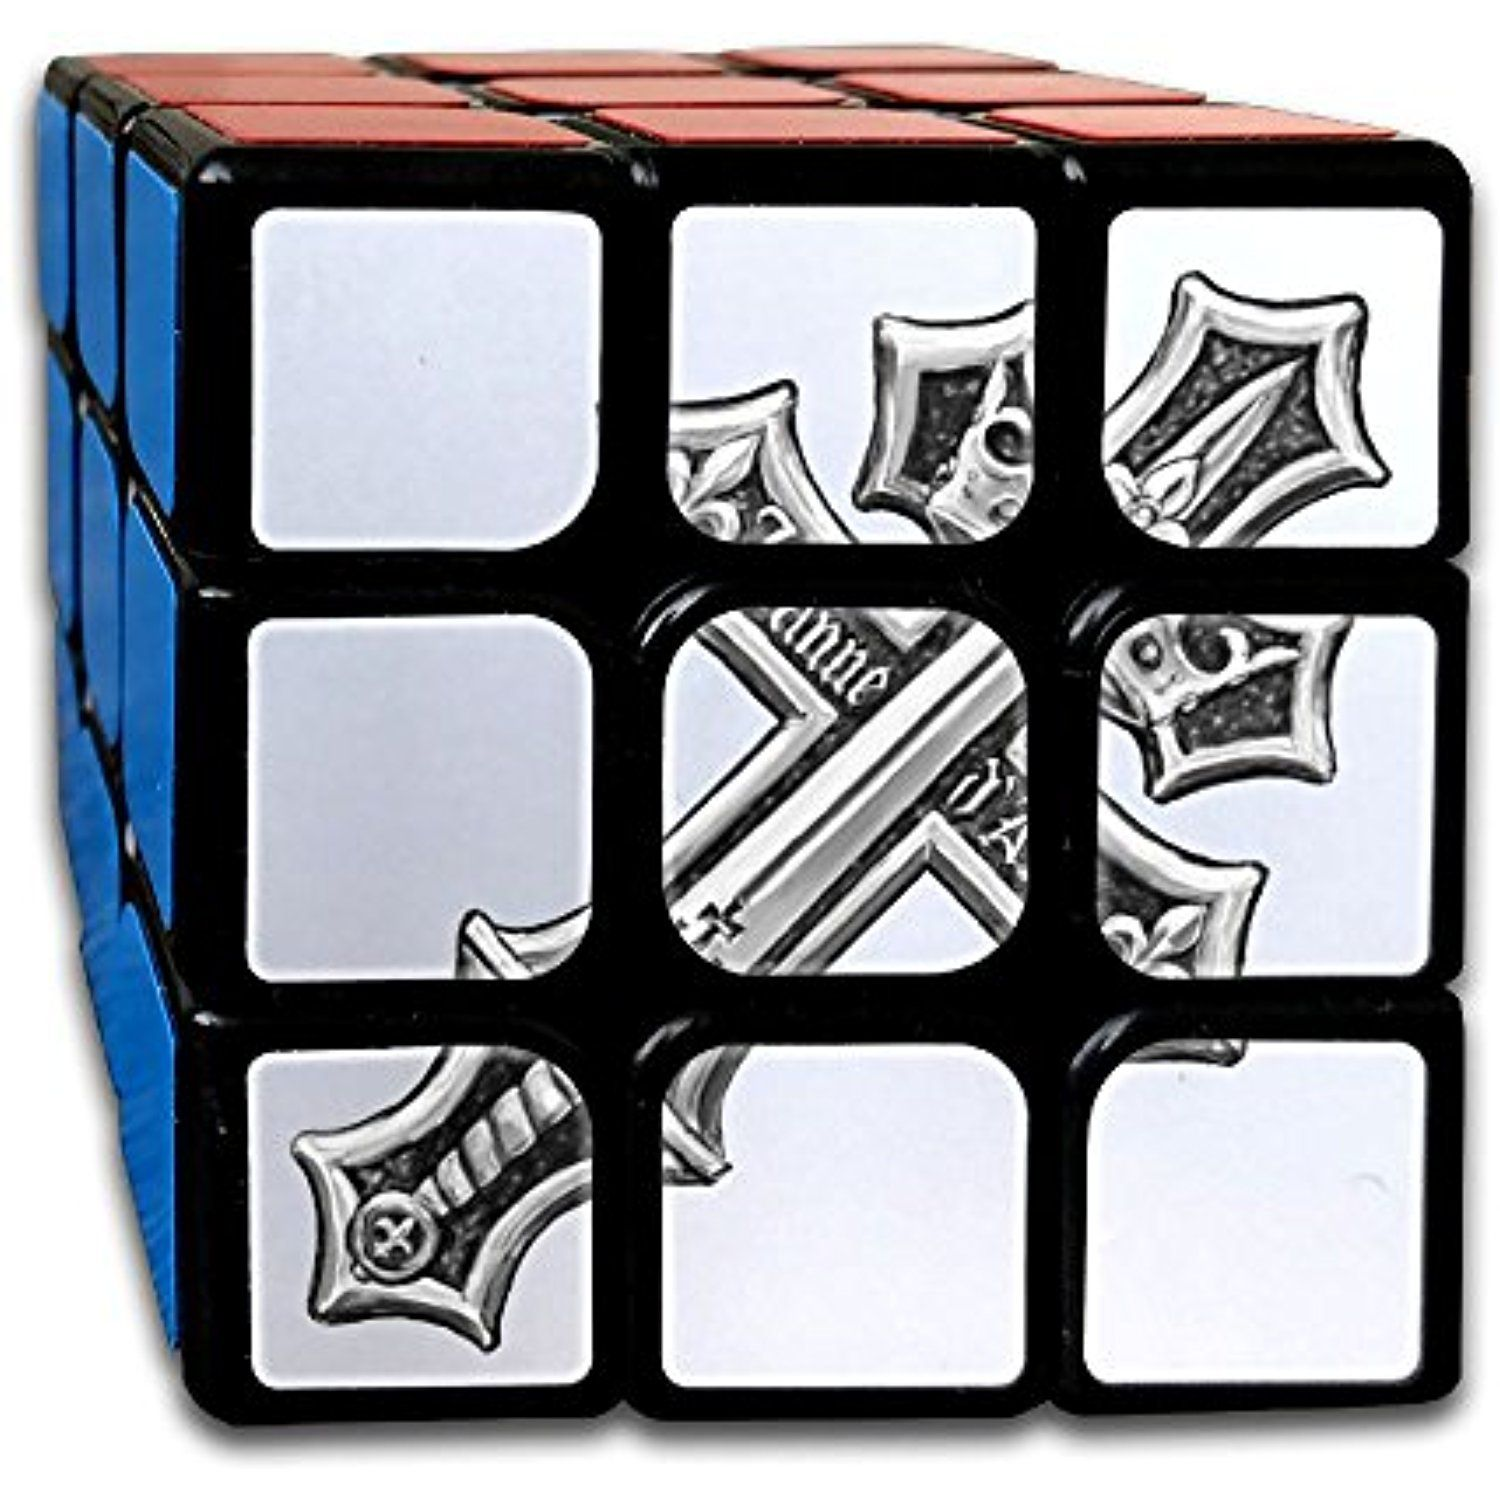 Cross Sword Crown Cool Tattoo Speed 3x3x3 Puzzle Cube Game